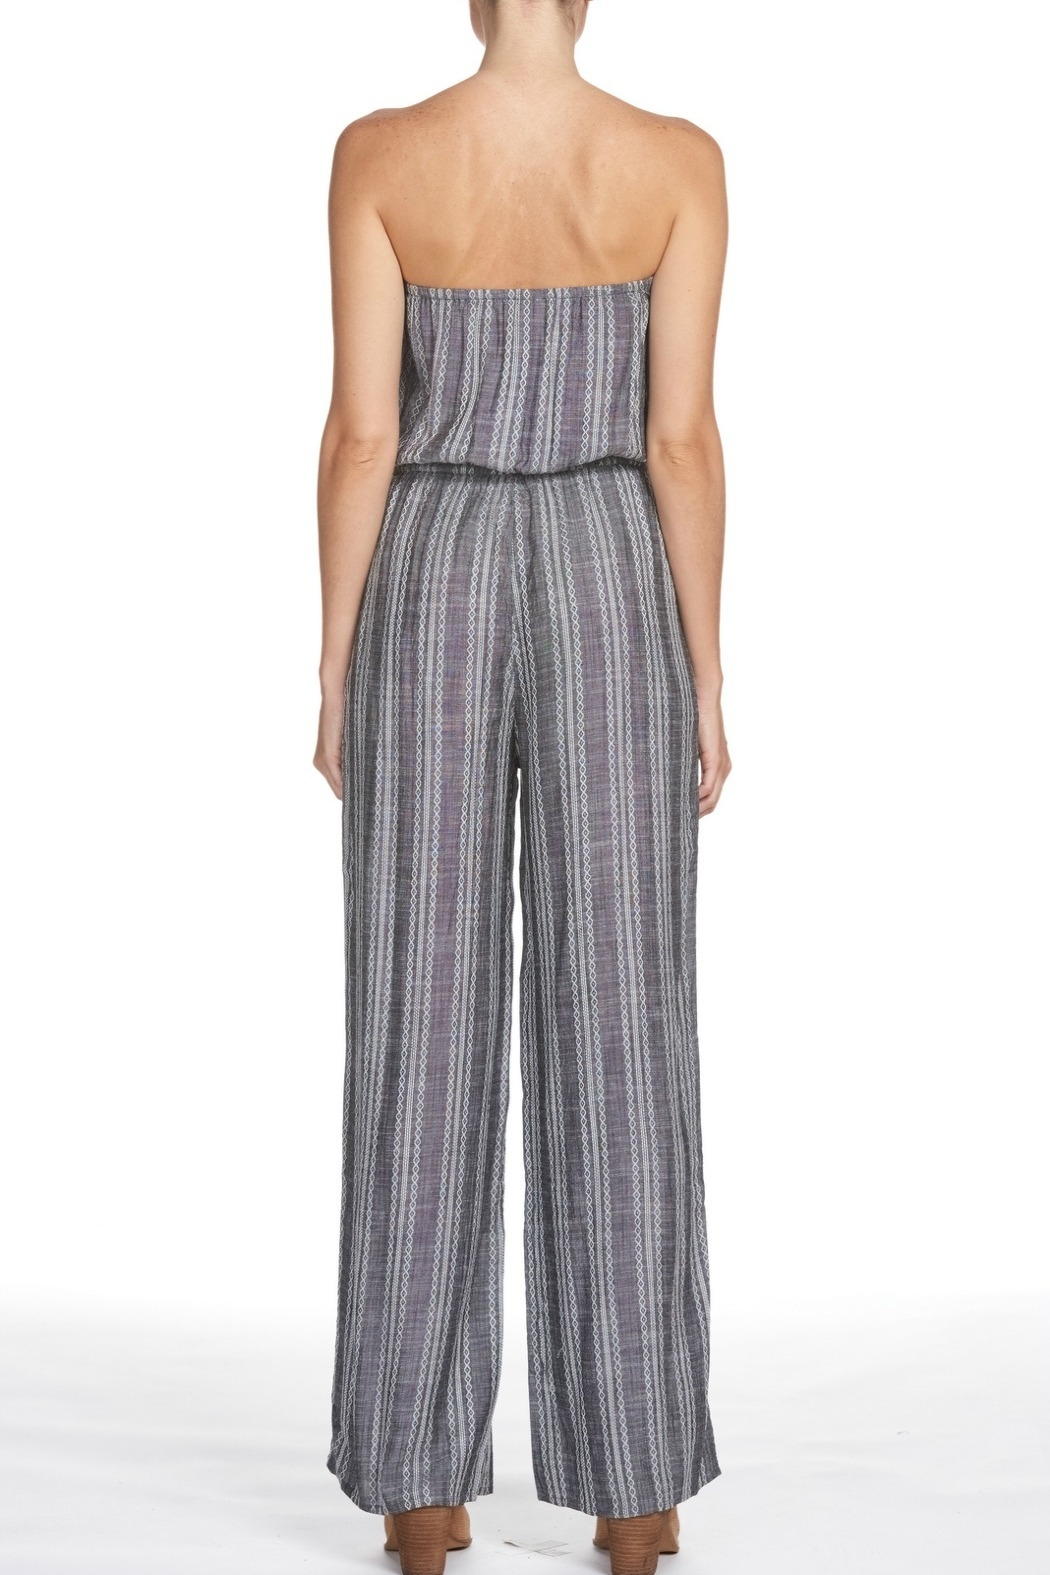 Elan In the Sand Jumpsuit - Front Full Image